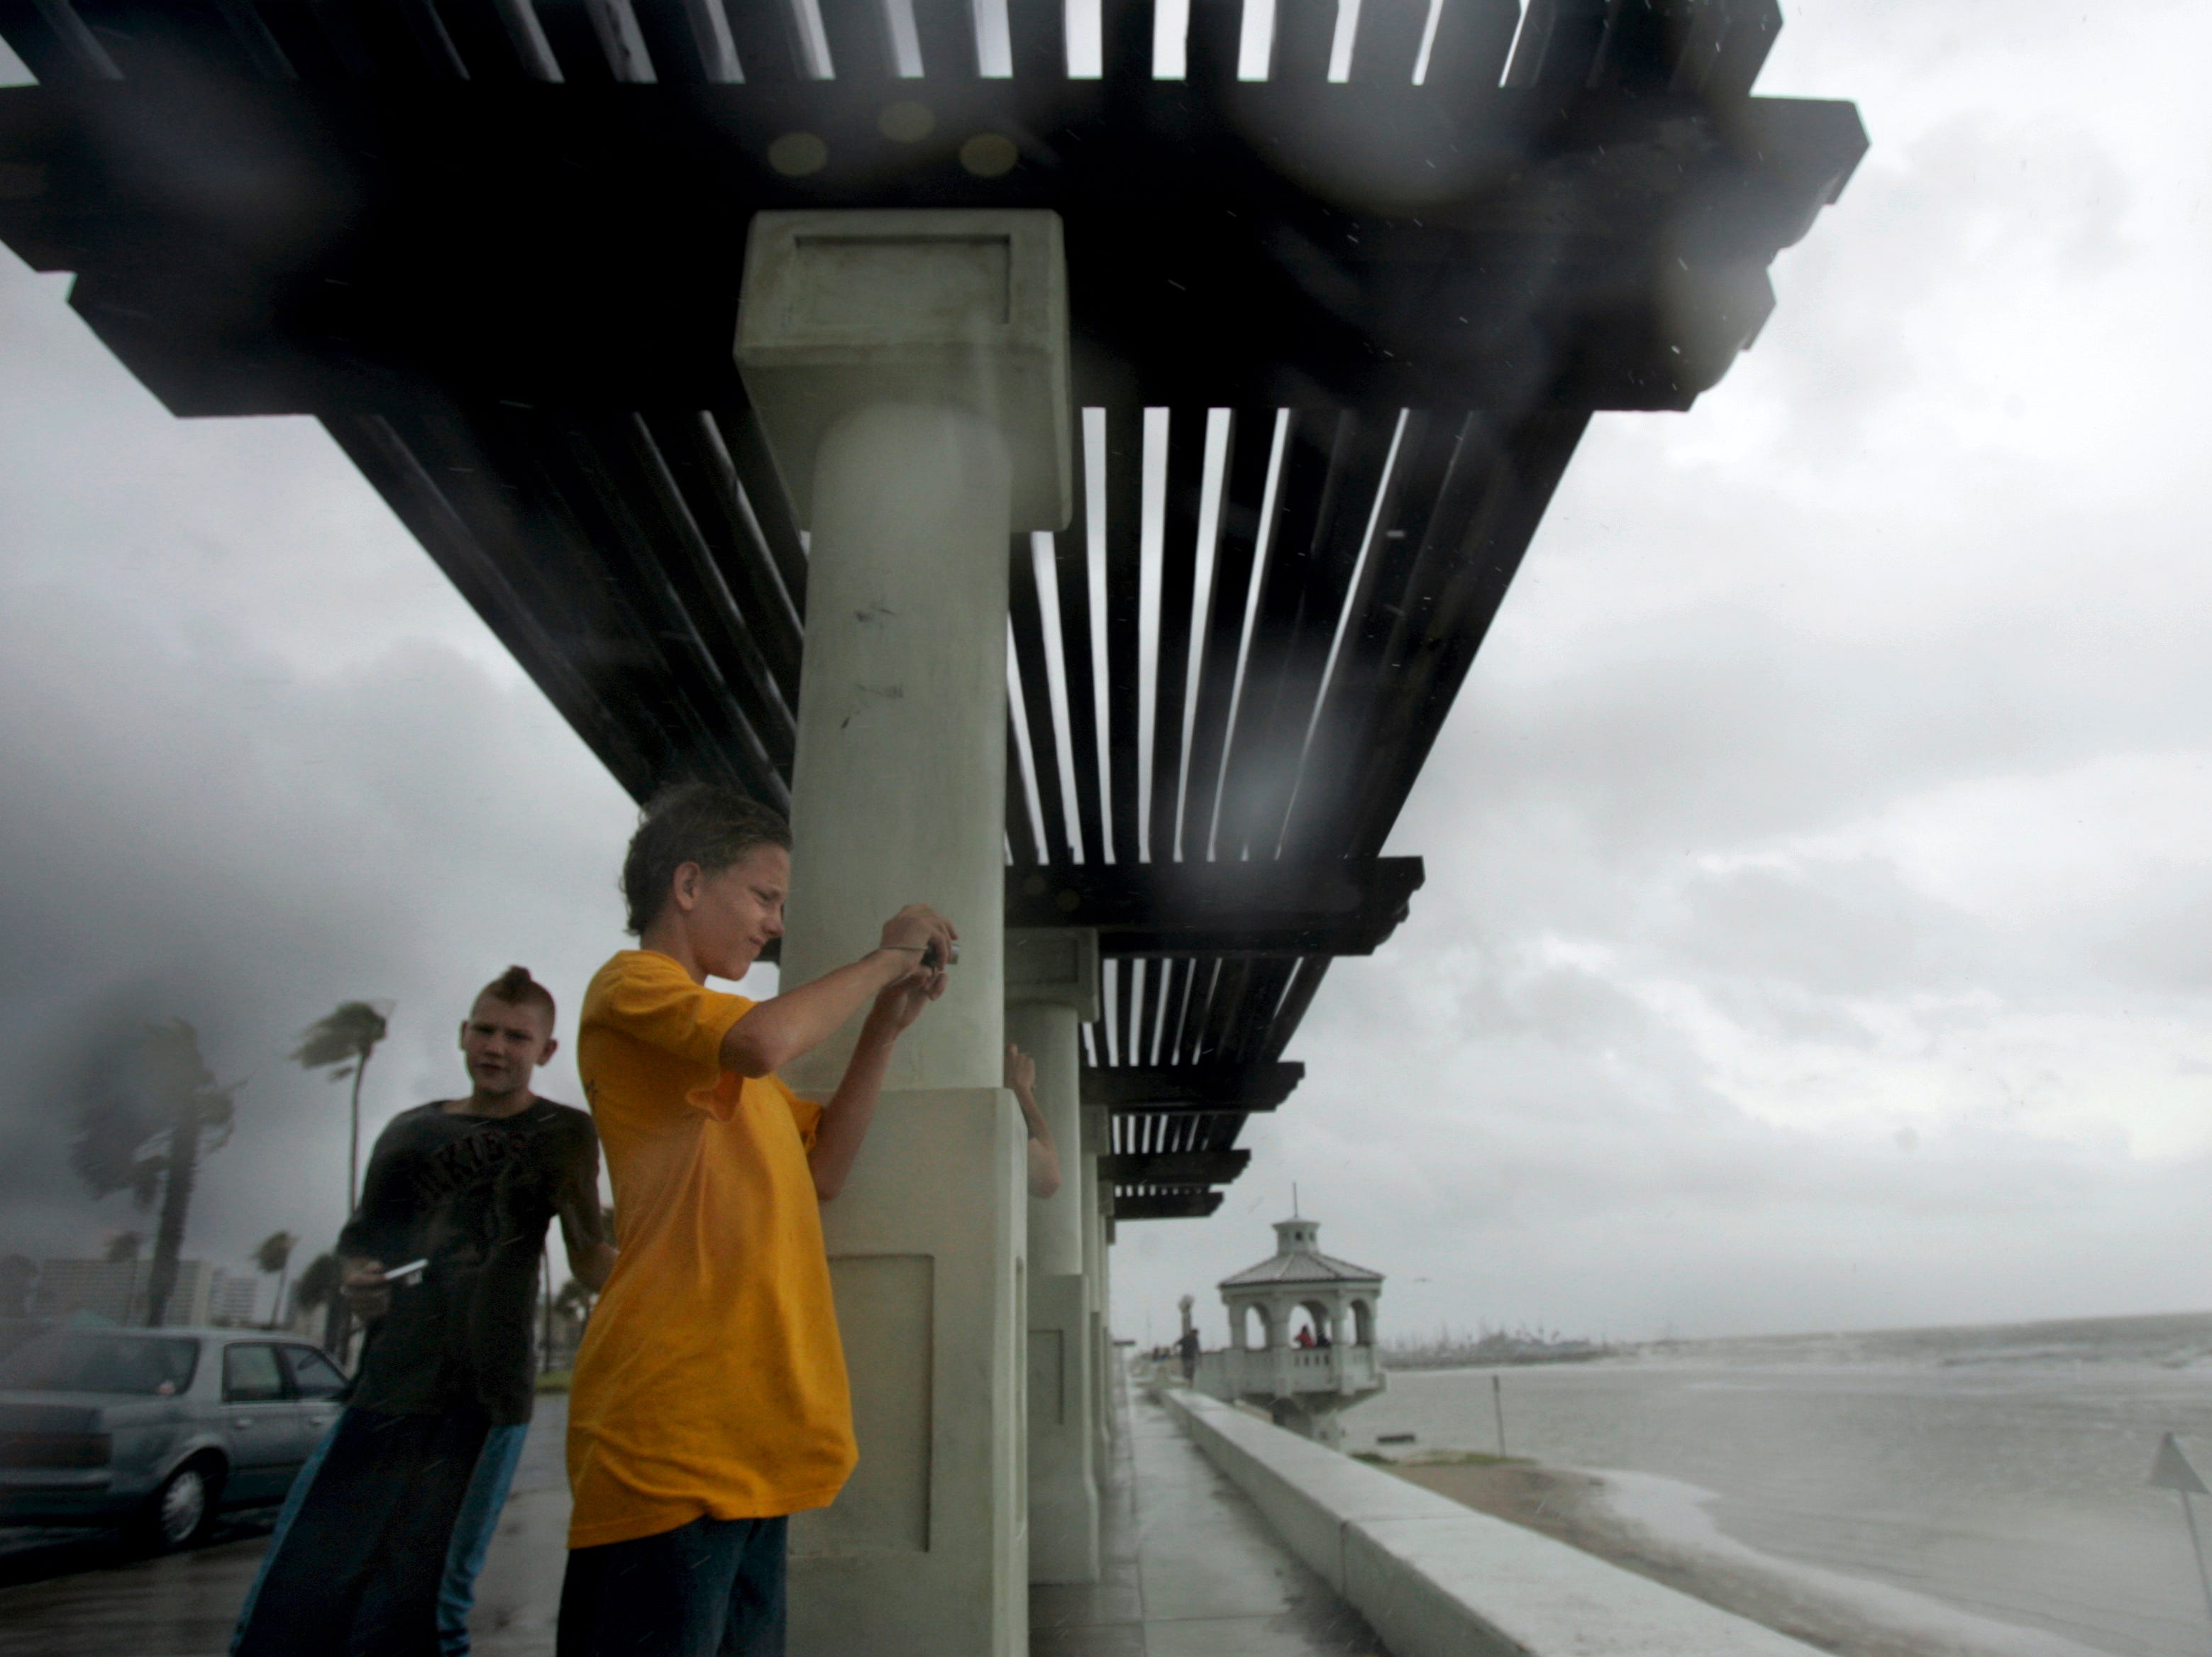 Rain starts to fall as Matthew Drye, 13 (left) and Zachary Wright,14, take pictures of the flooded McGee Beach area in downtown Corpus Christi on Wednesday, June 30, 2010. Bay waters rose as storm bands from Hurricane Alex hit the Coastal Bend.